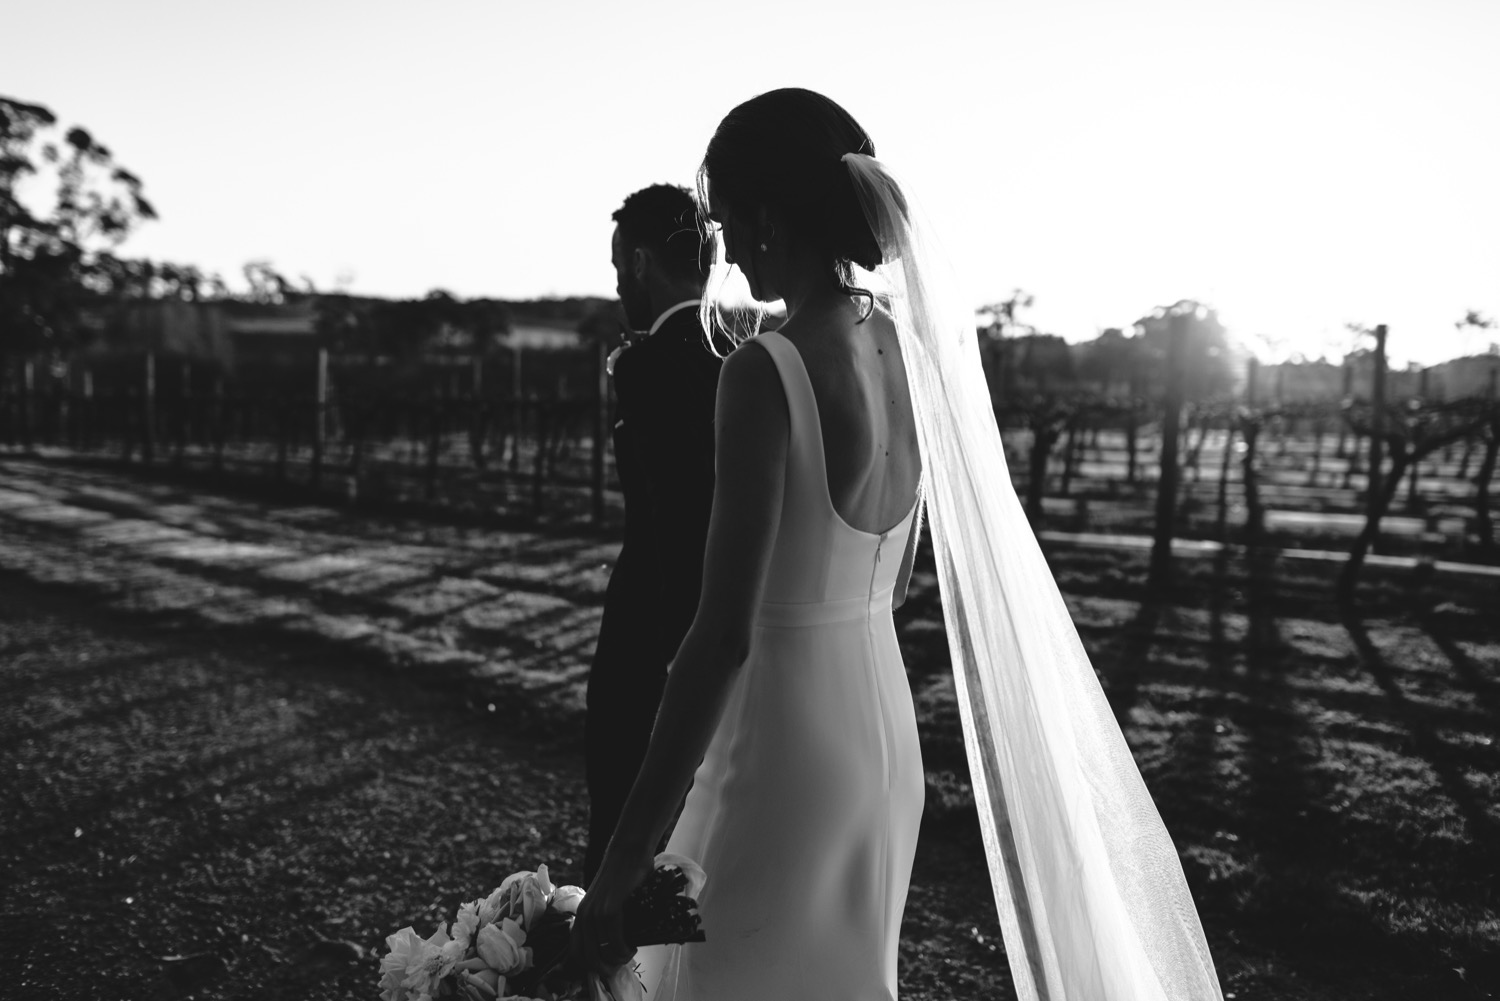 Centennial vineyards wedding photographer